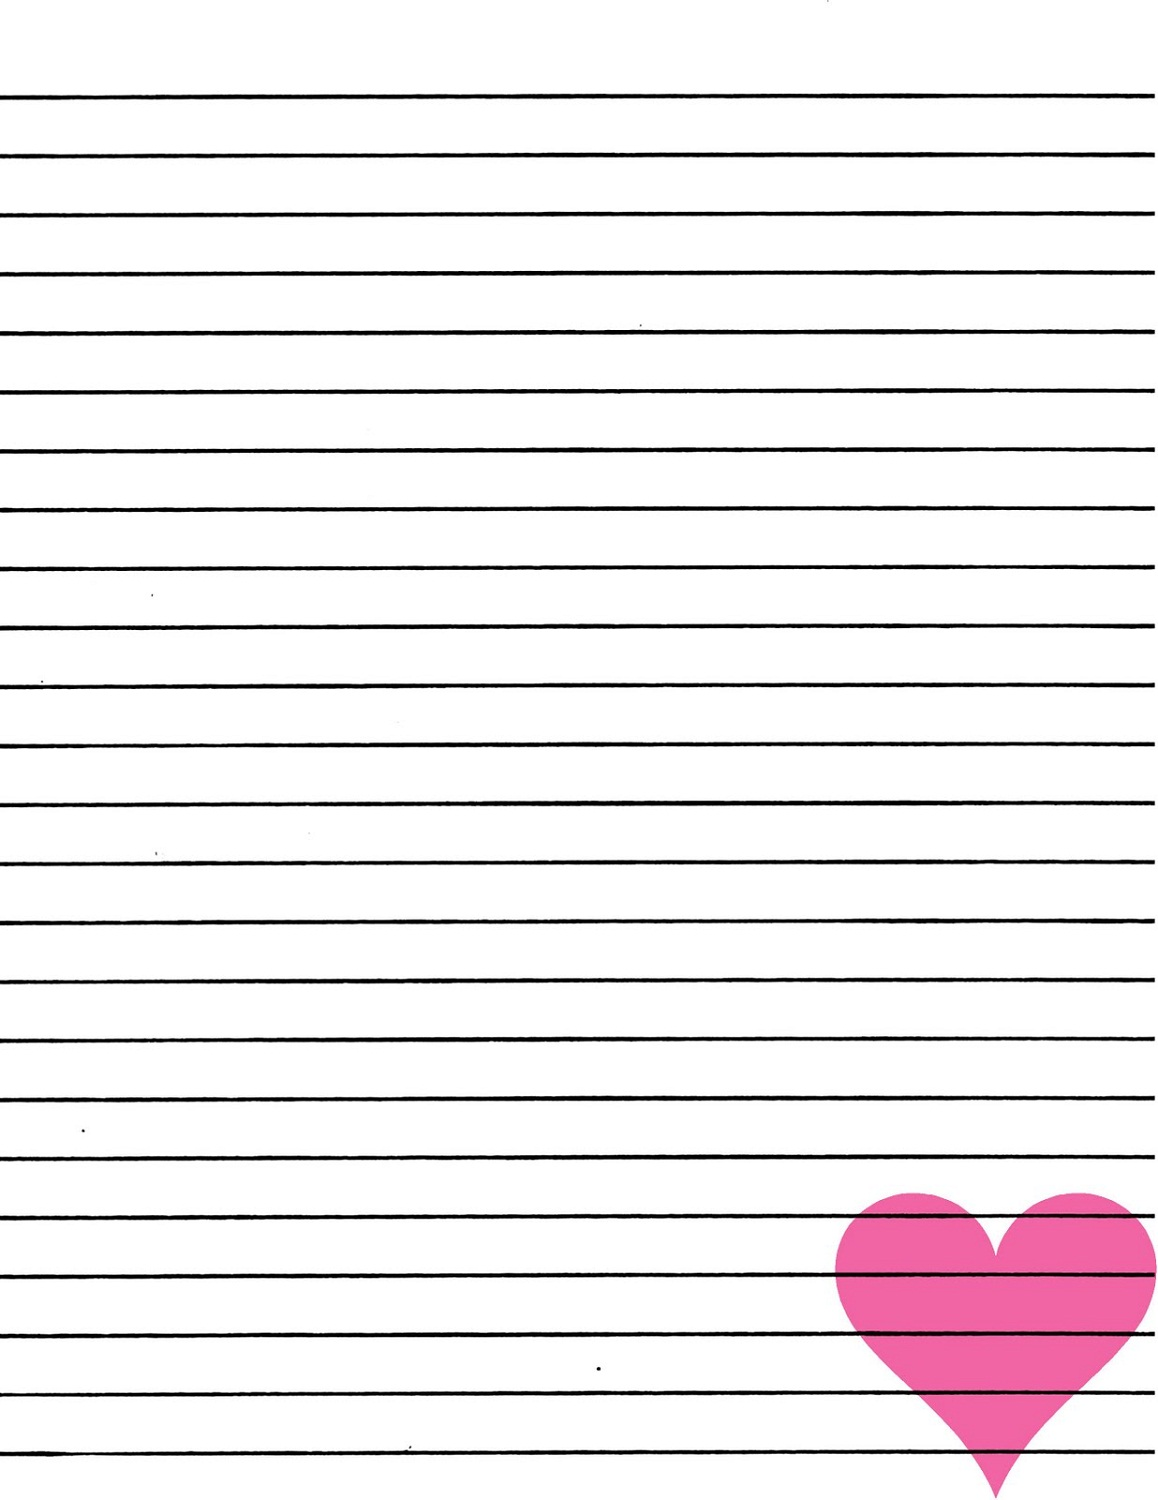 Lined Paper For Writing Pink Heart In Lined Paper To Write On